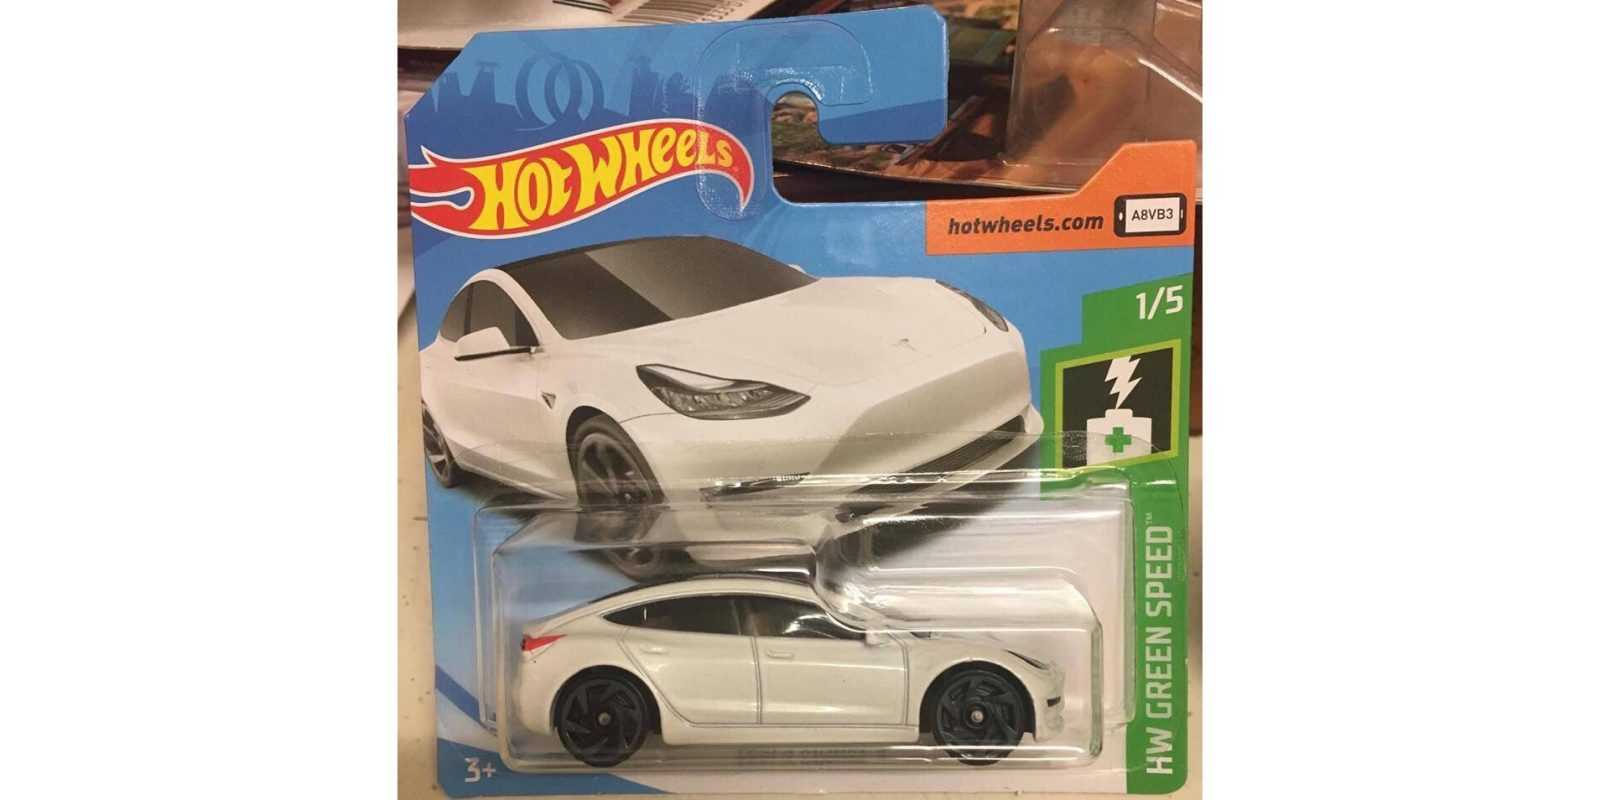 Tesla Model 3 in stores — toy stores, as new Hot Wheels release | EV